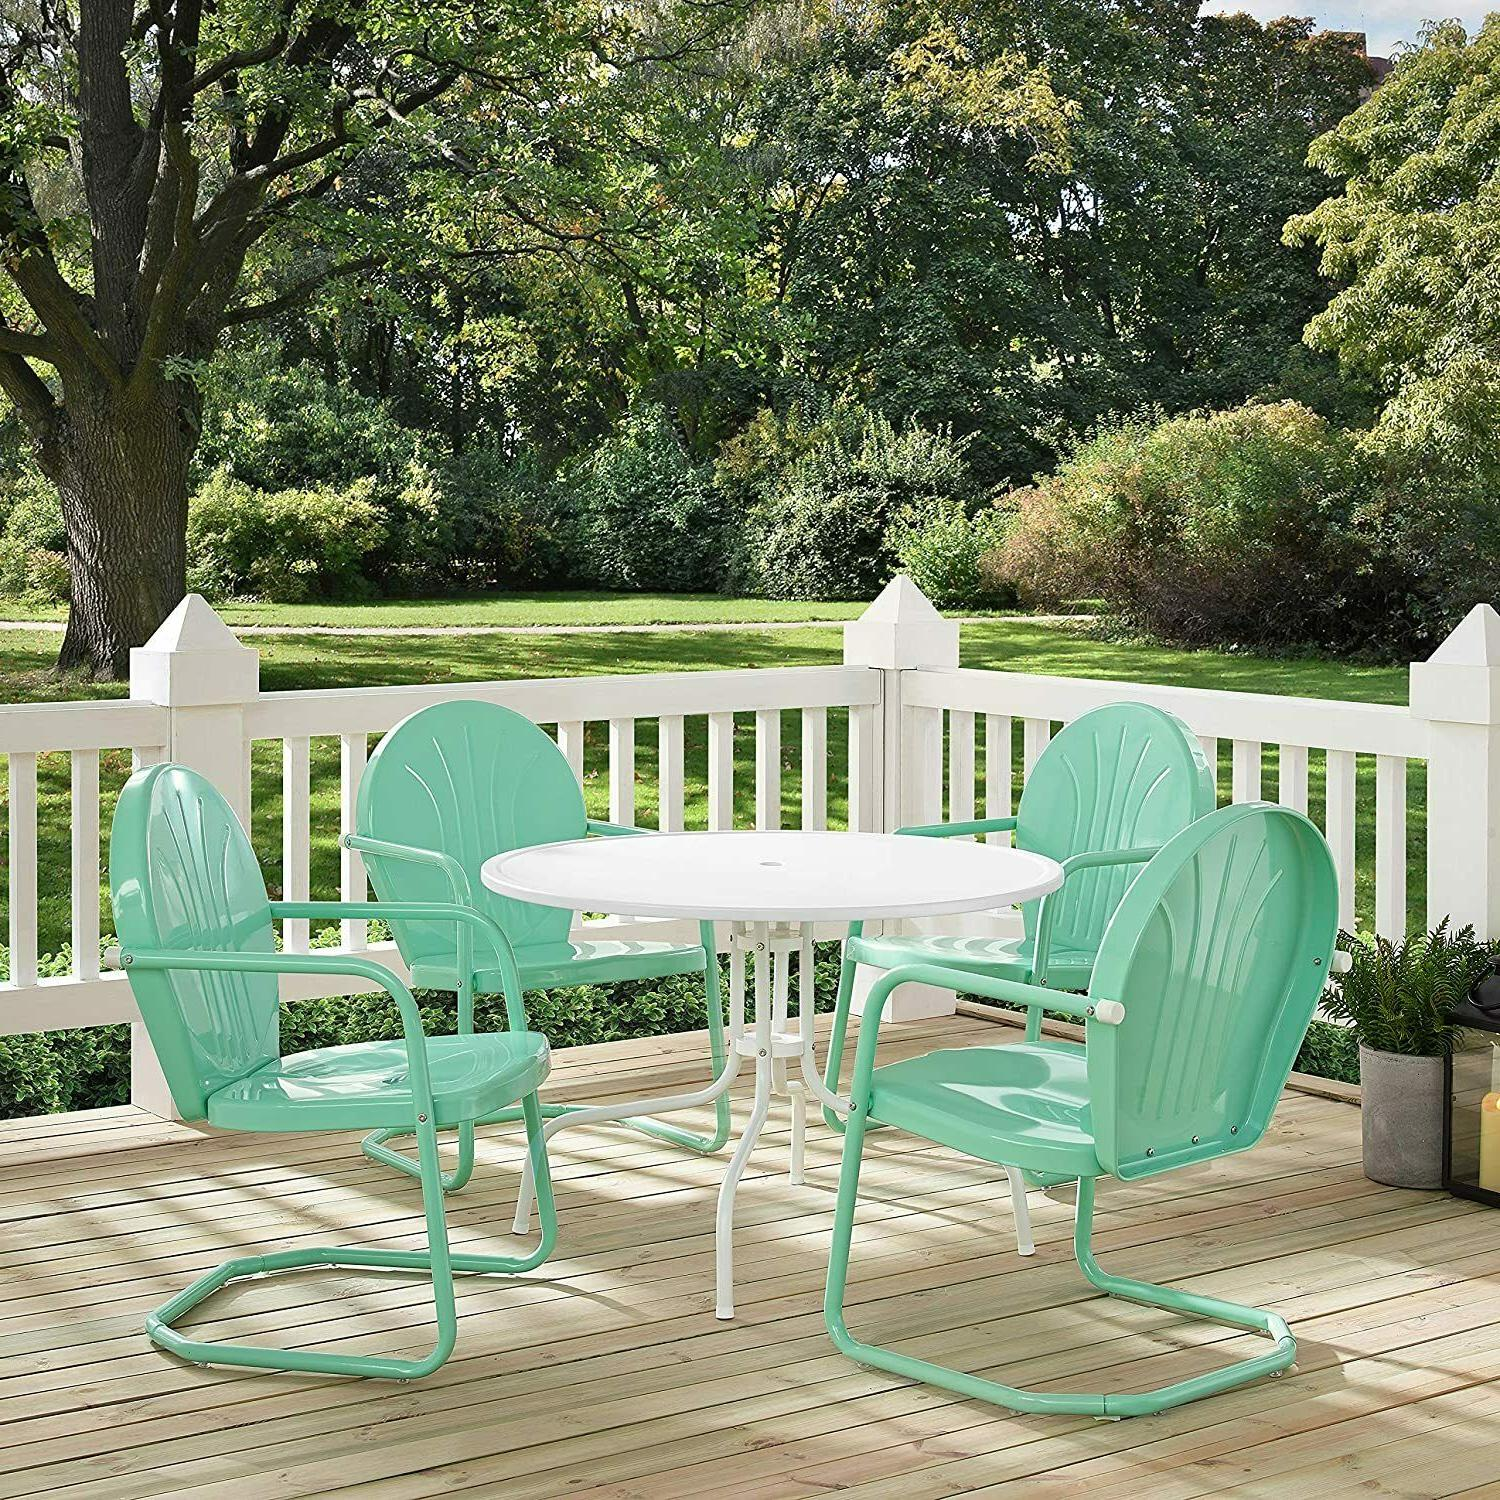 5 Piece Dining Set 1-Table 4-Chairs Patio Furniture